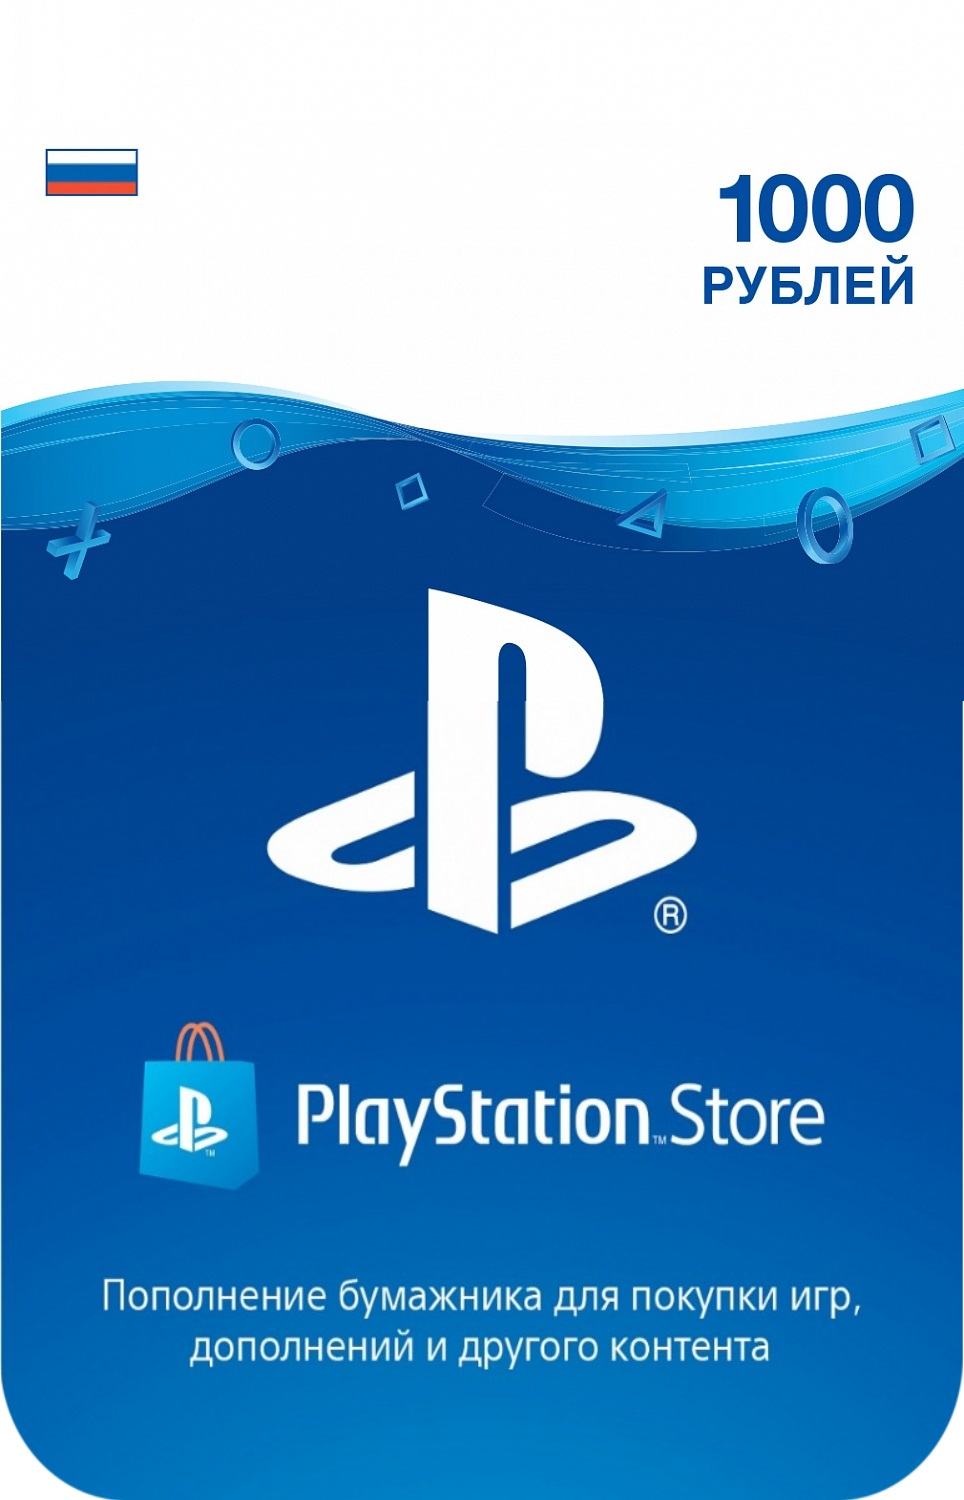 PSN 1000 rubles PlayStation Network (RUS) PAYMENT CARD